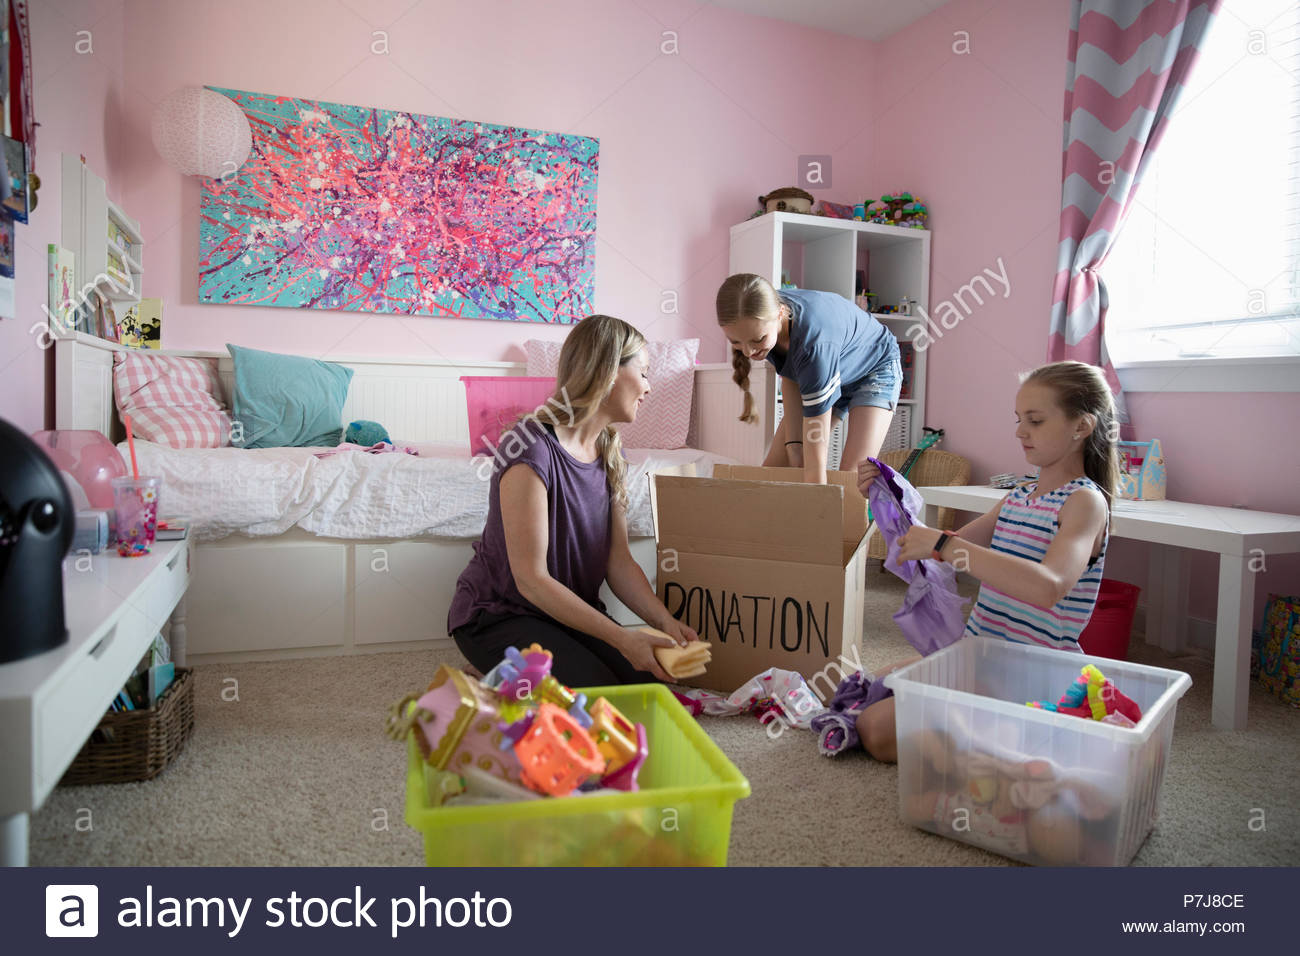 Mother and daughters organizing bedroom, donating - Stock Image